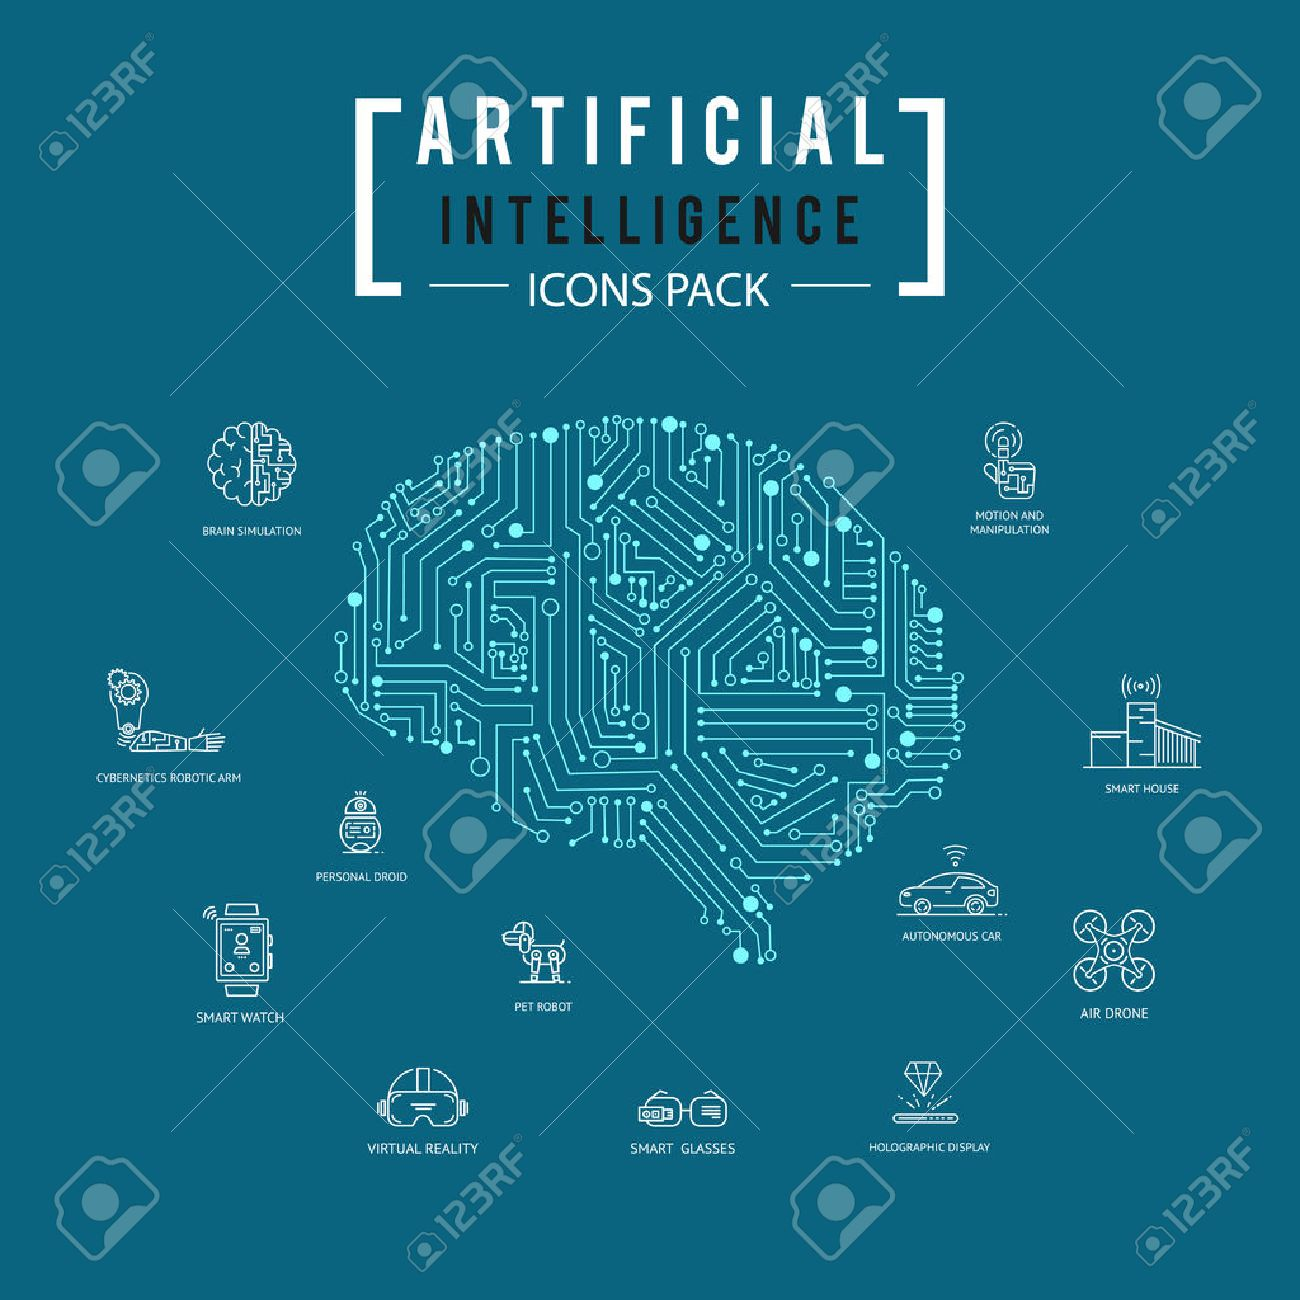 73709 Intelligent Stock Vector Illustration And Royalty Free Circuit Board Binary Code Clipart Transmission Of Brain Artificial Intelligence Icon Pack